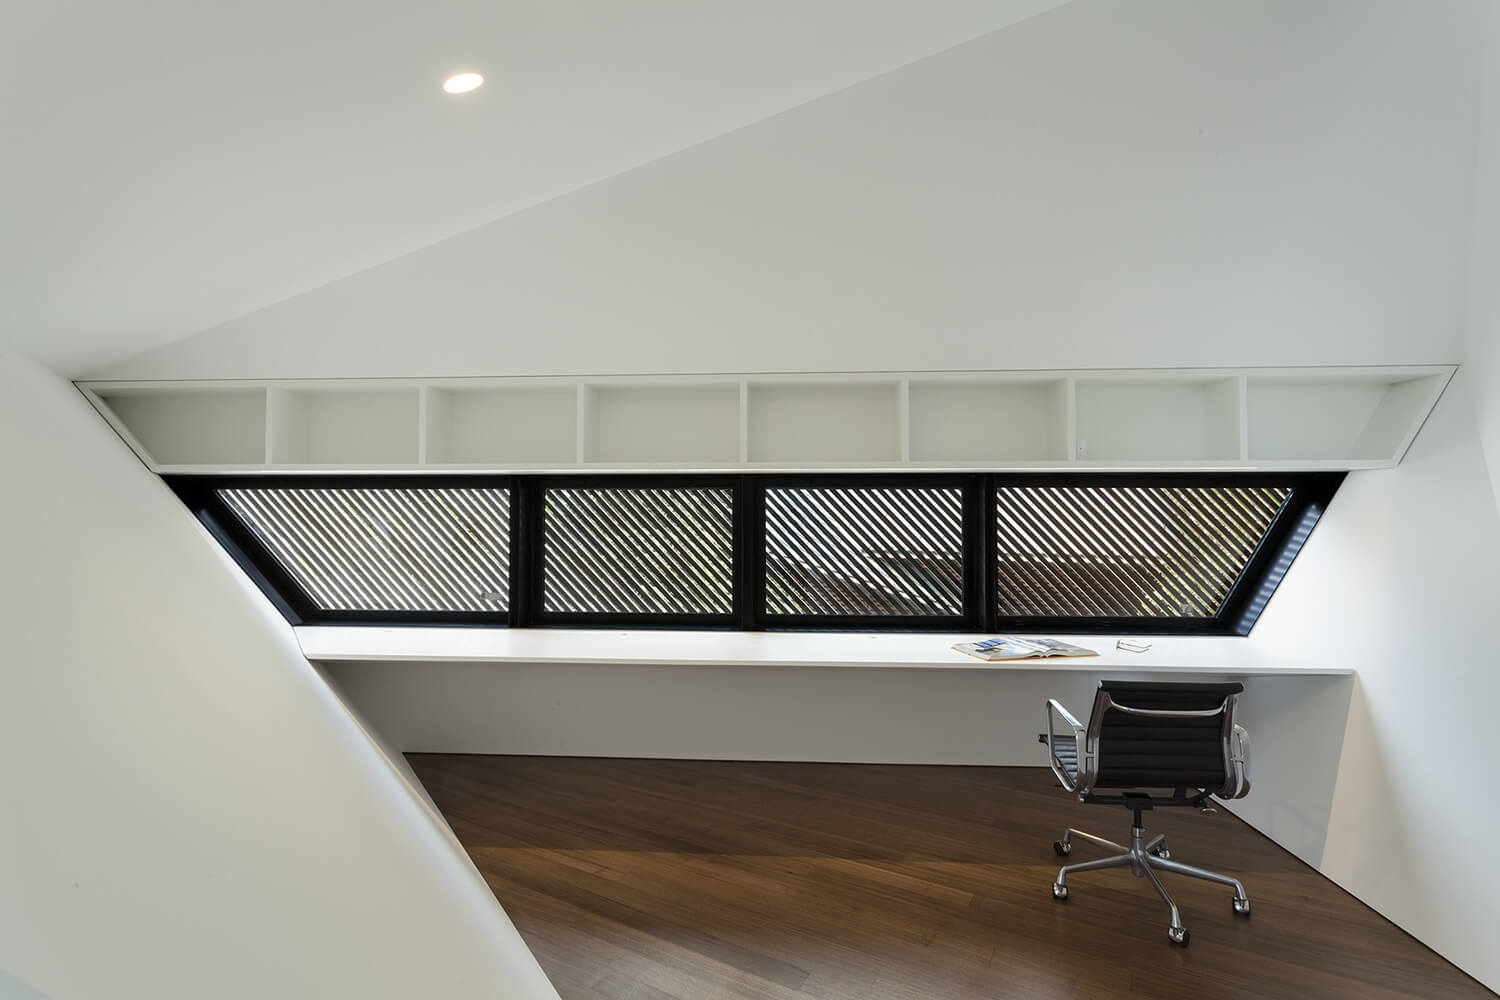 The study is a marvel of minimalist design in white and black. The desk stretches in one piece across the space with plenty of storage.